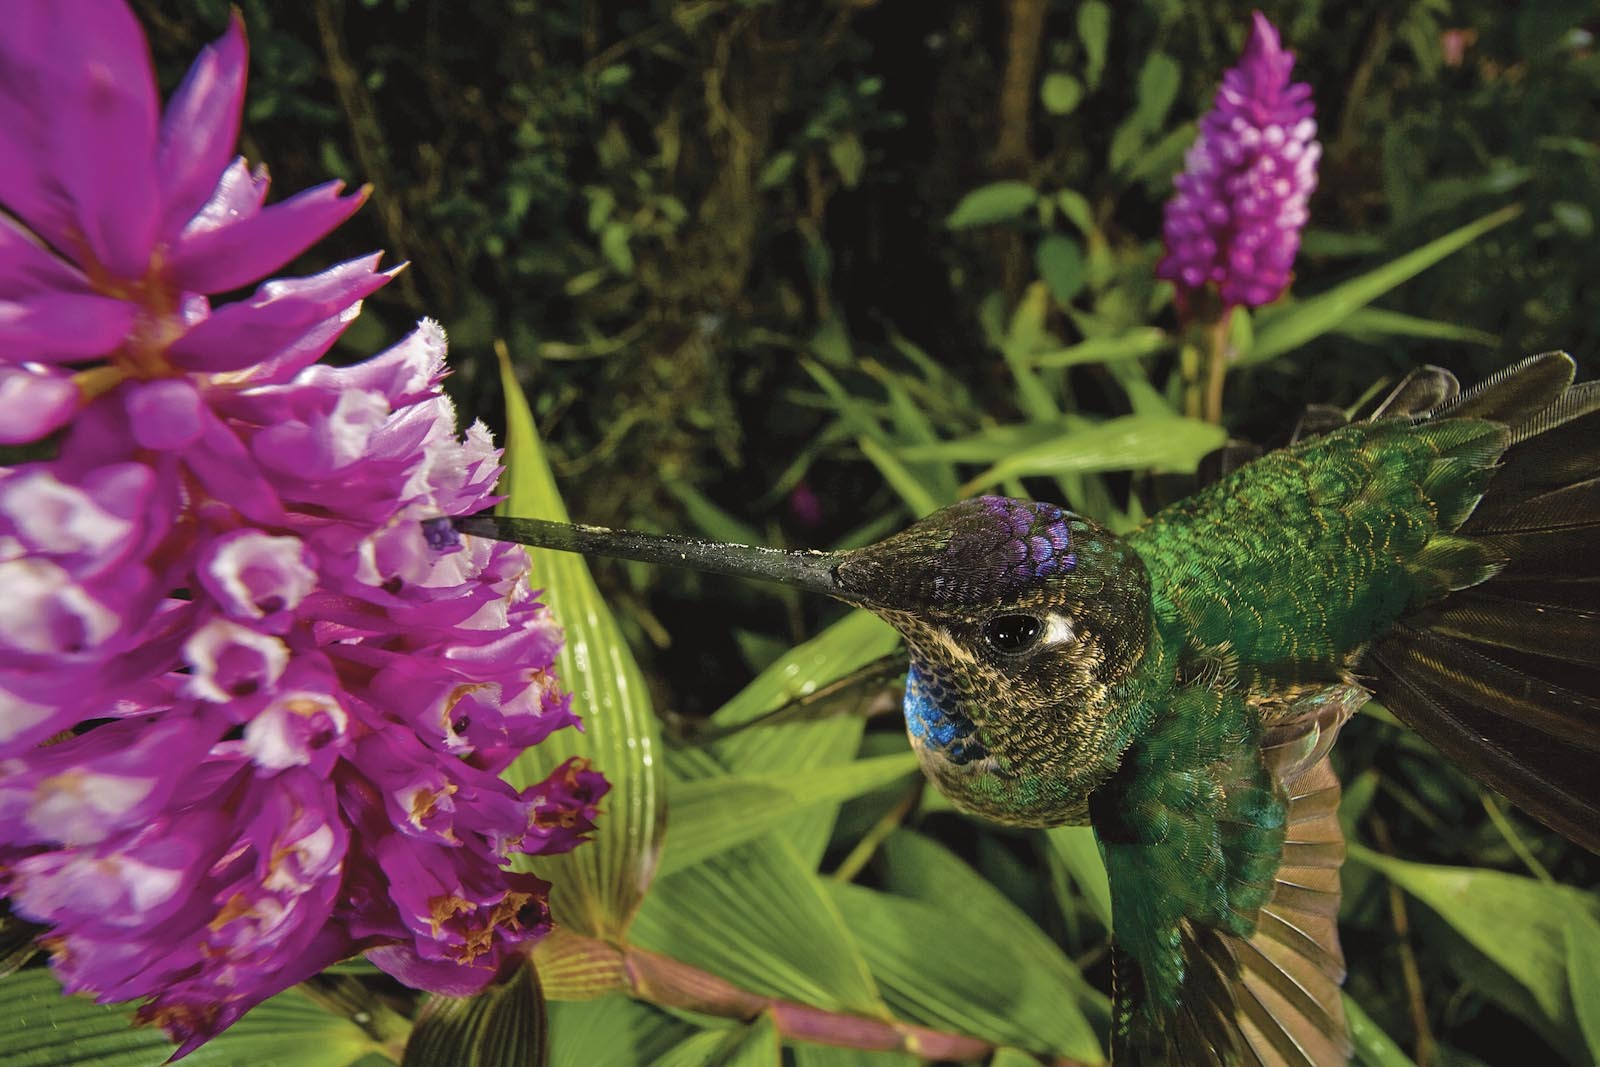 Deceptive beauties - orchids and their pollinators